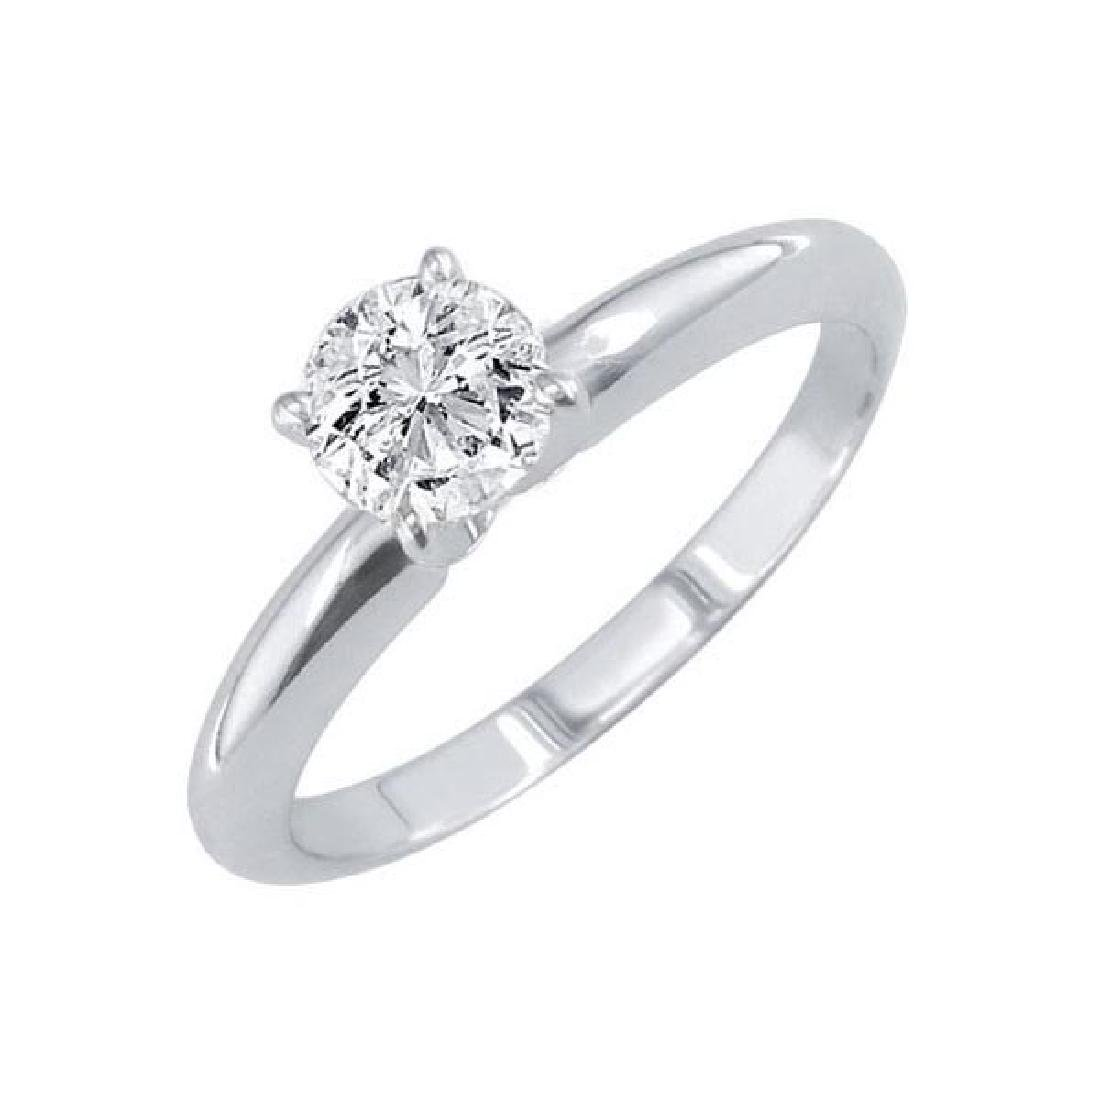 Certified 1.09 CTW Round Diamond Solitaire 14k Ring D/S